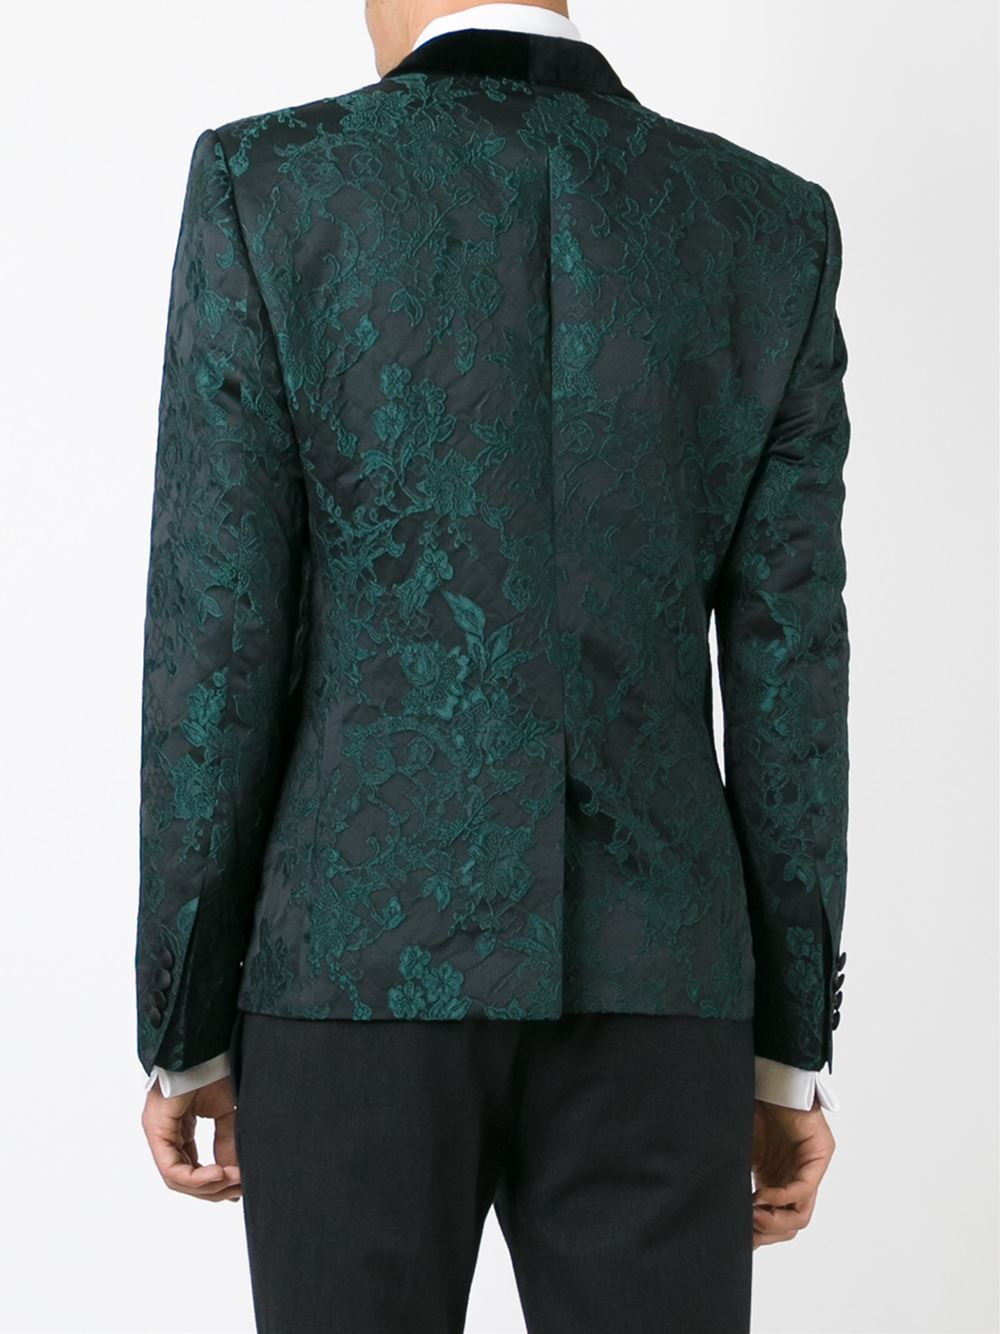 Dolce gabbana embroidered floral lace tuxedo jacket in